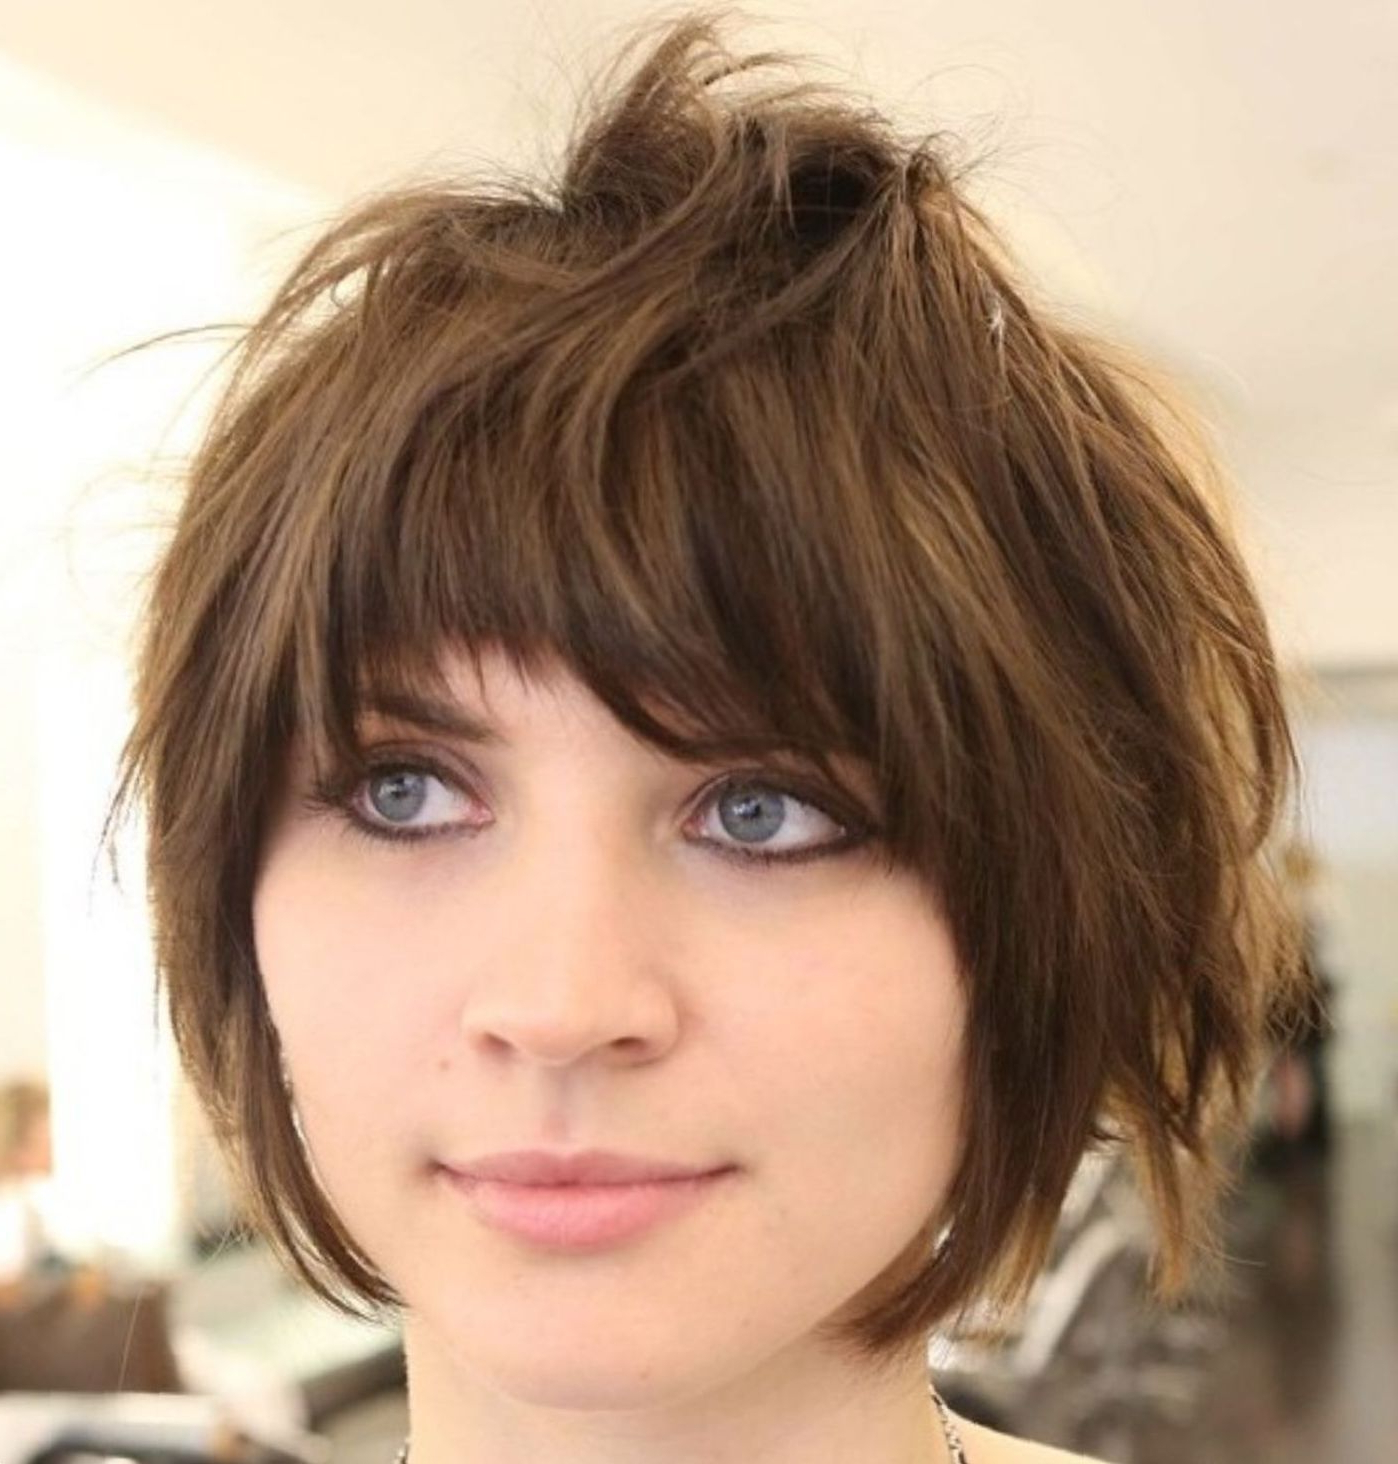 60 Short Shag Hairstyles That You Simply Can't Miss In 2019 Throughout Short Shag Bob Haircuts (View 8 of 20)